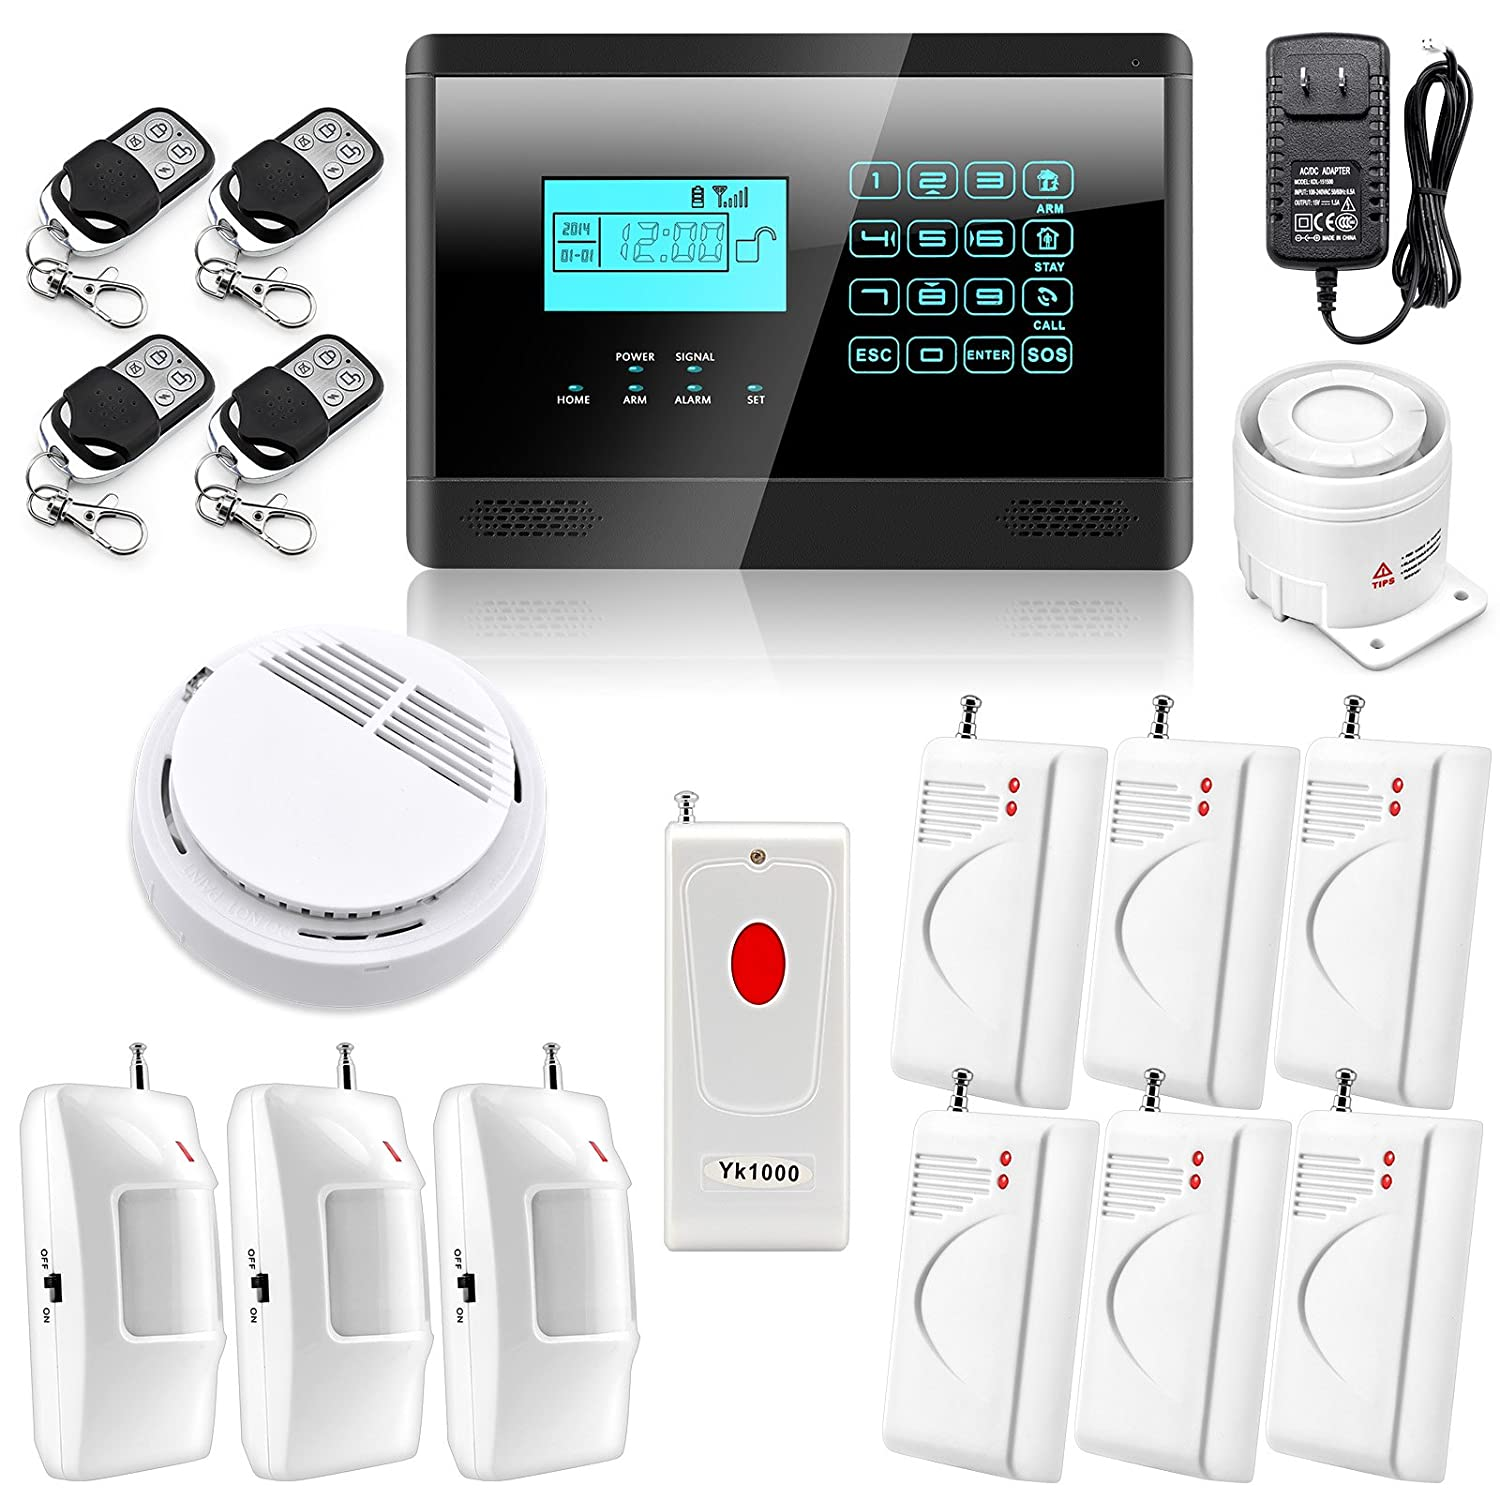 The 50 Best Smart Home Security Systems: Top Home Automation Products for  Monitoring & Securing Your Home | Safety.com